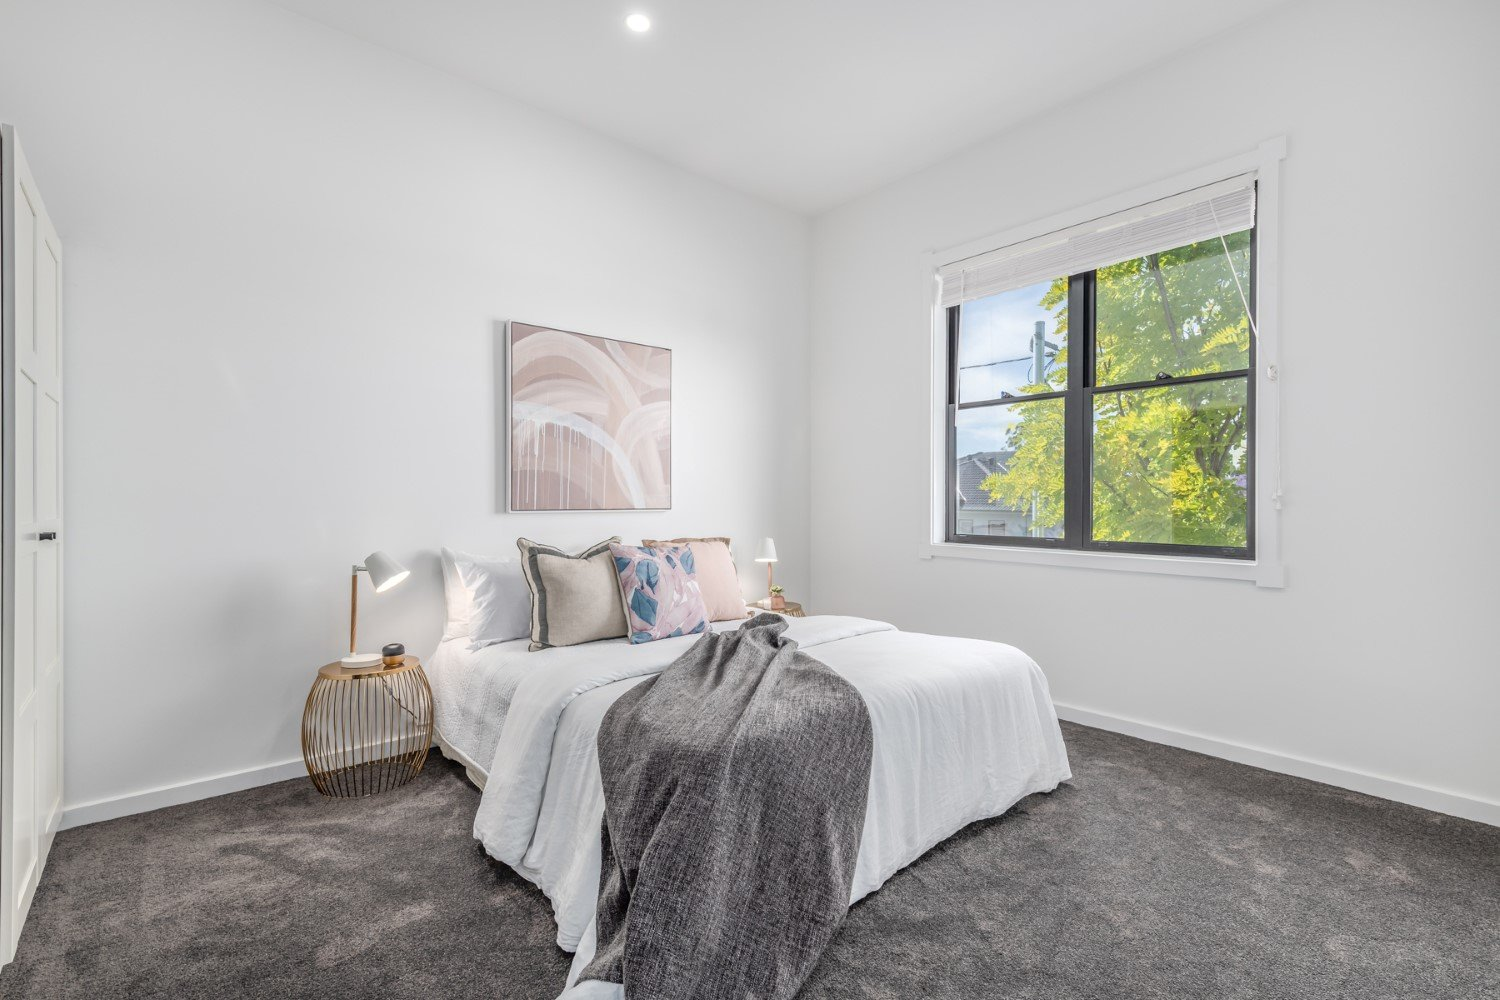 Renovated Family Home | New Lambton - https://www.peonyandsilk.com.au/wp-content/uploads/2019/02/Peony-and-Silk-Renovated-Family-Home-New-Lambton-6.jpg